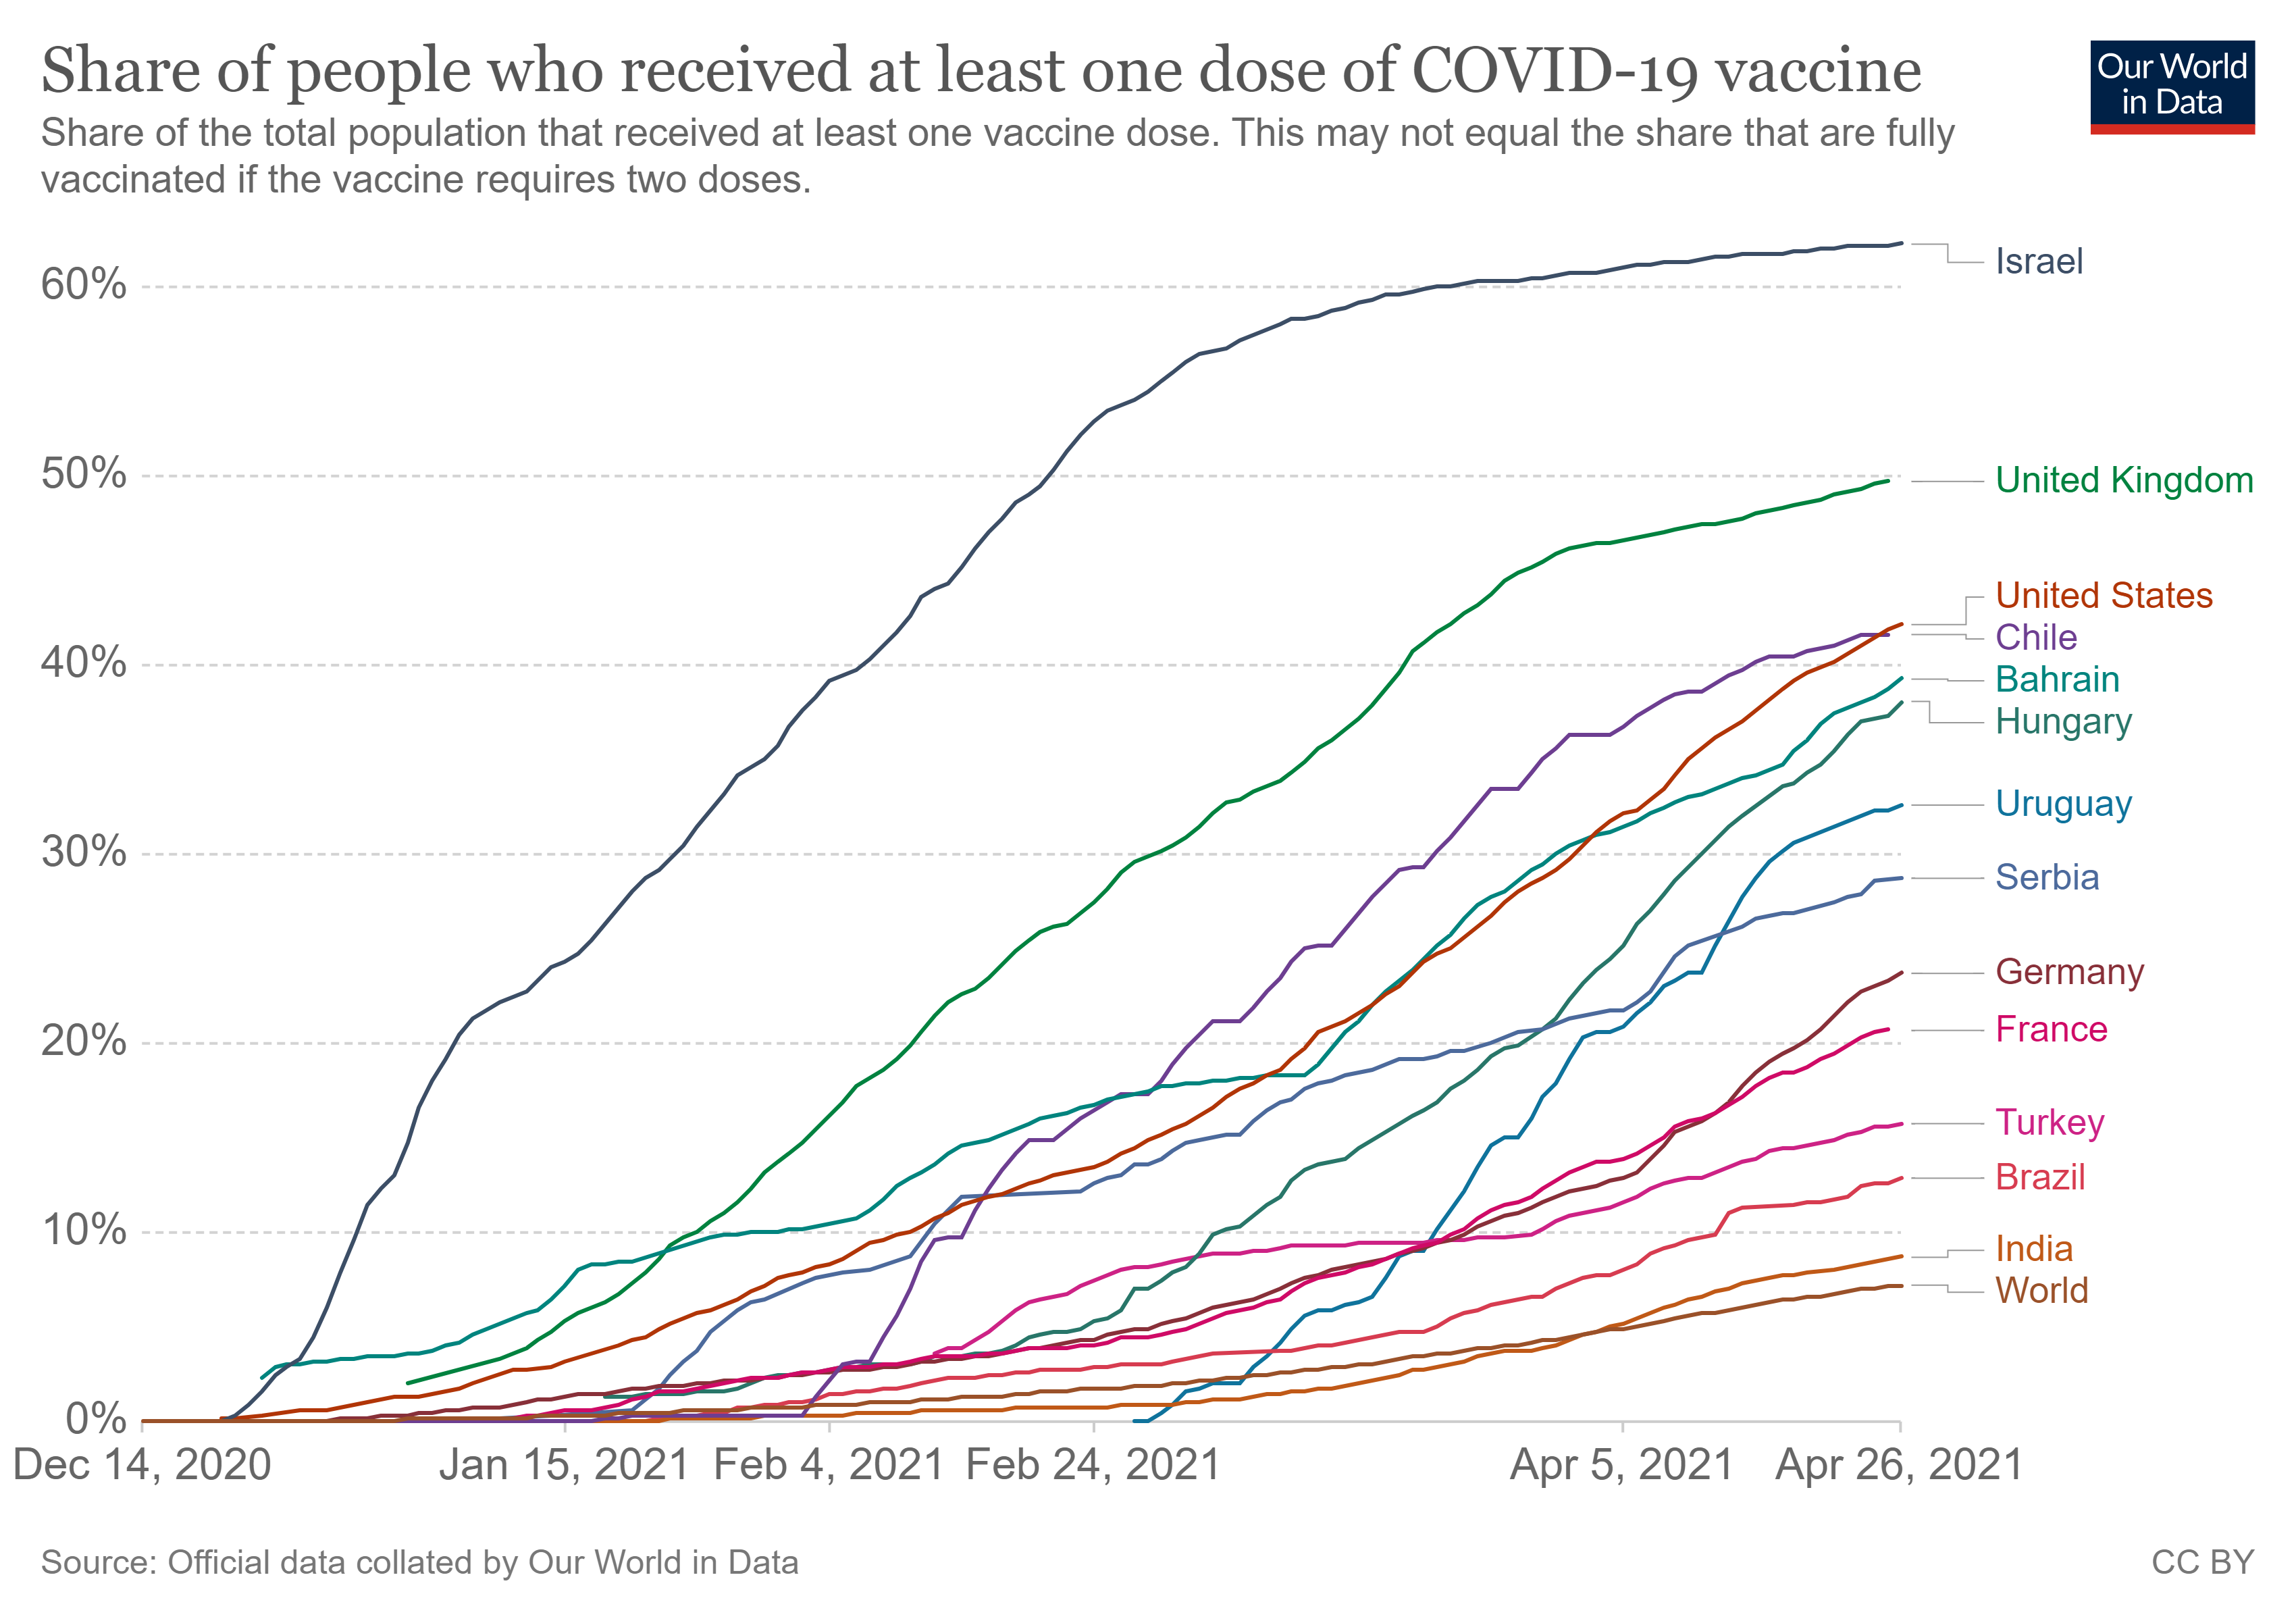 Share of people who received at least one dose of the COVID-19 vaccine.